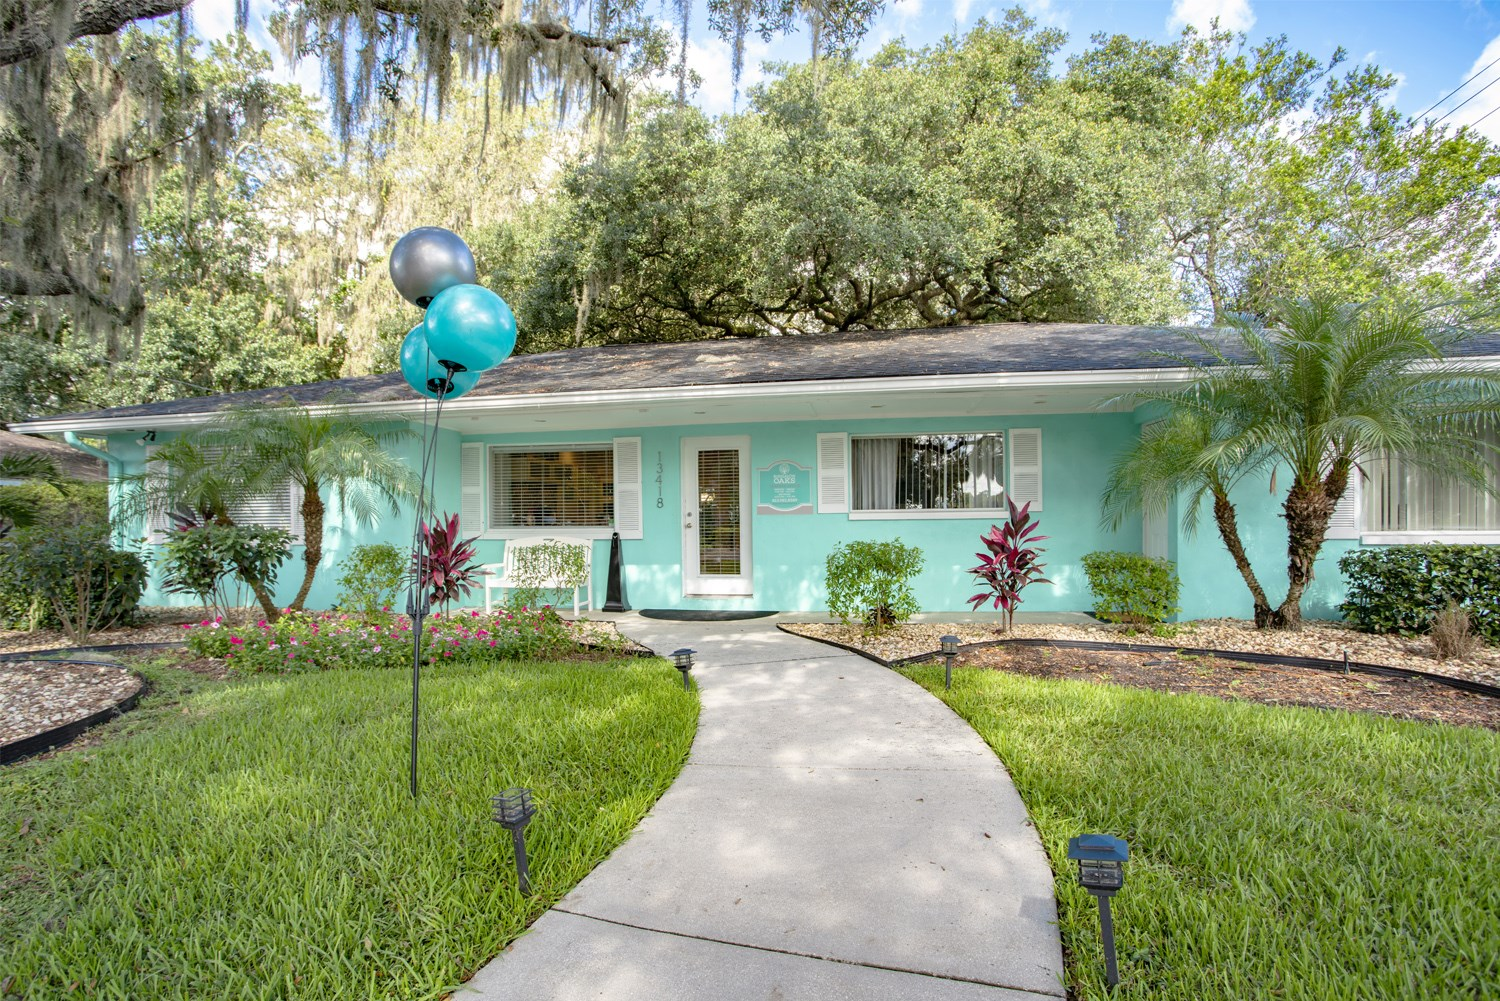 Bungalow Oaks leasing office in Tampa Florida